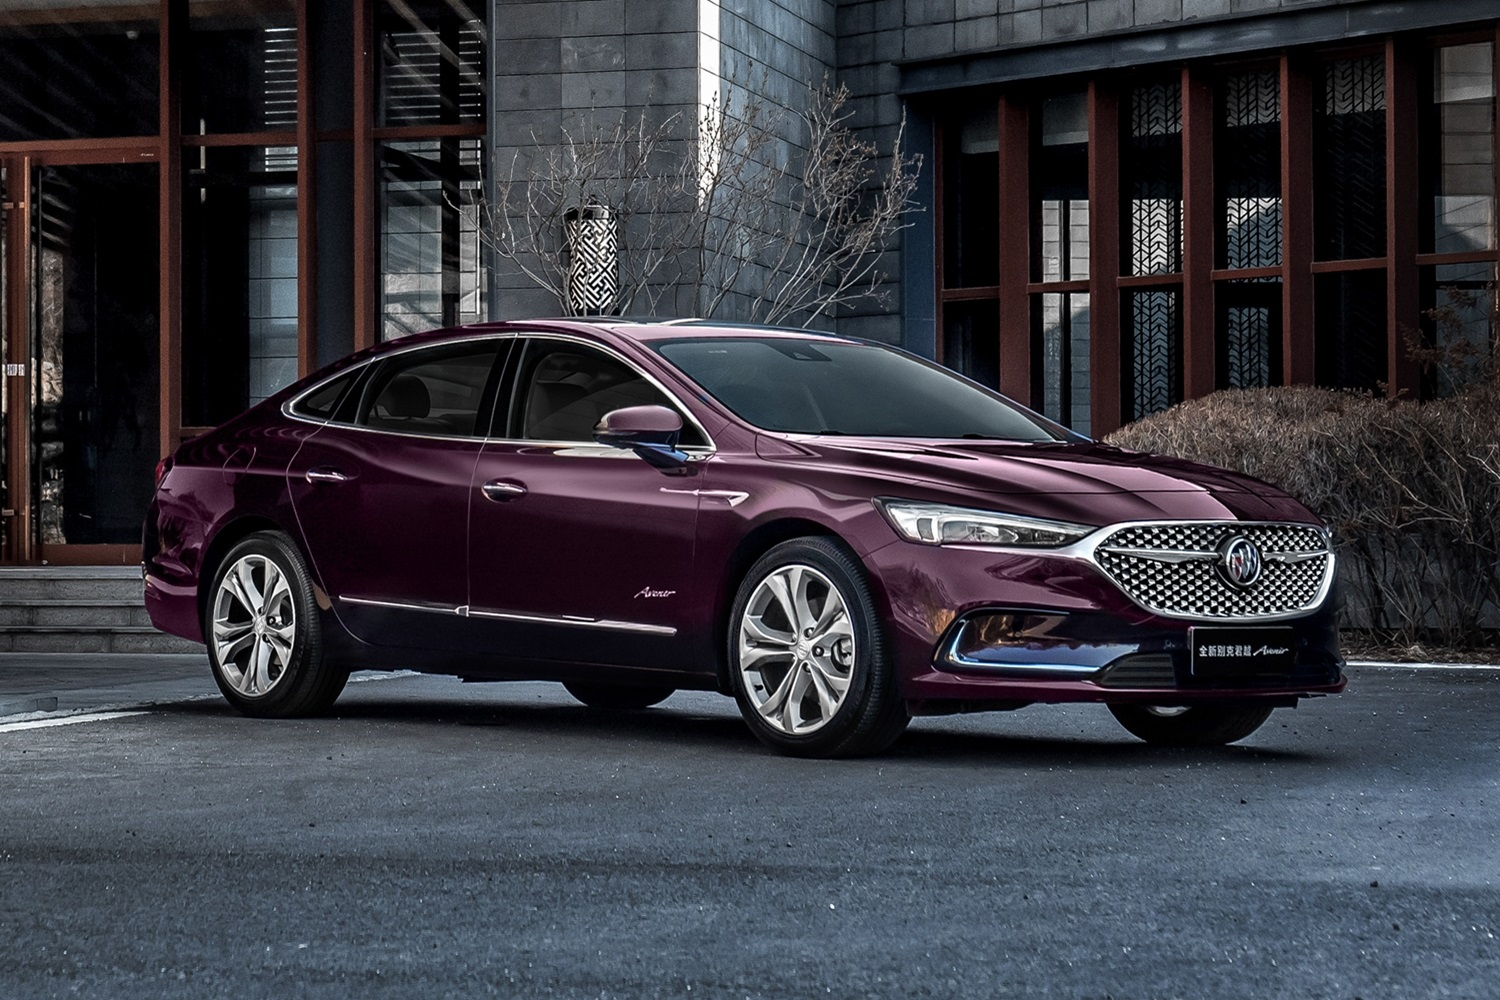 2021 Buick Lacrosse Gets More Refined Than Ever | Gm Authority New 2021 Buick Lacrosse Price, Interior, Specs